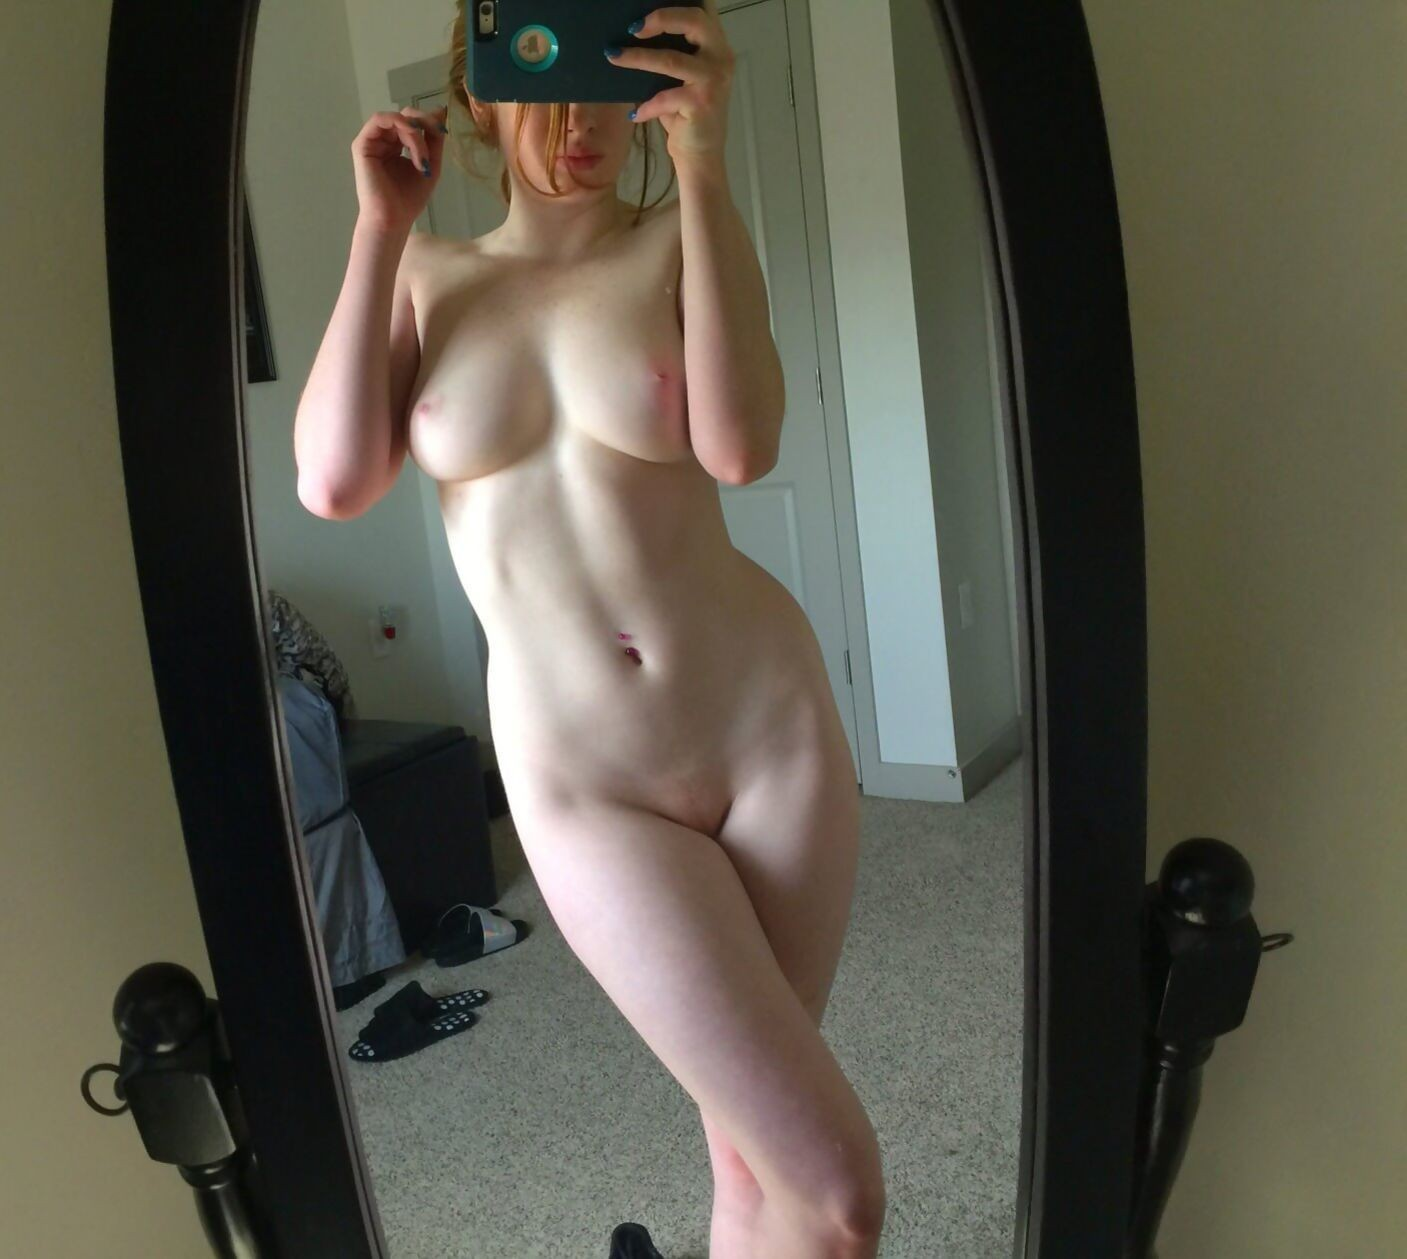 Abigale Mandler Leaked Fappening 74 thefappening.us